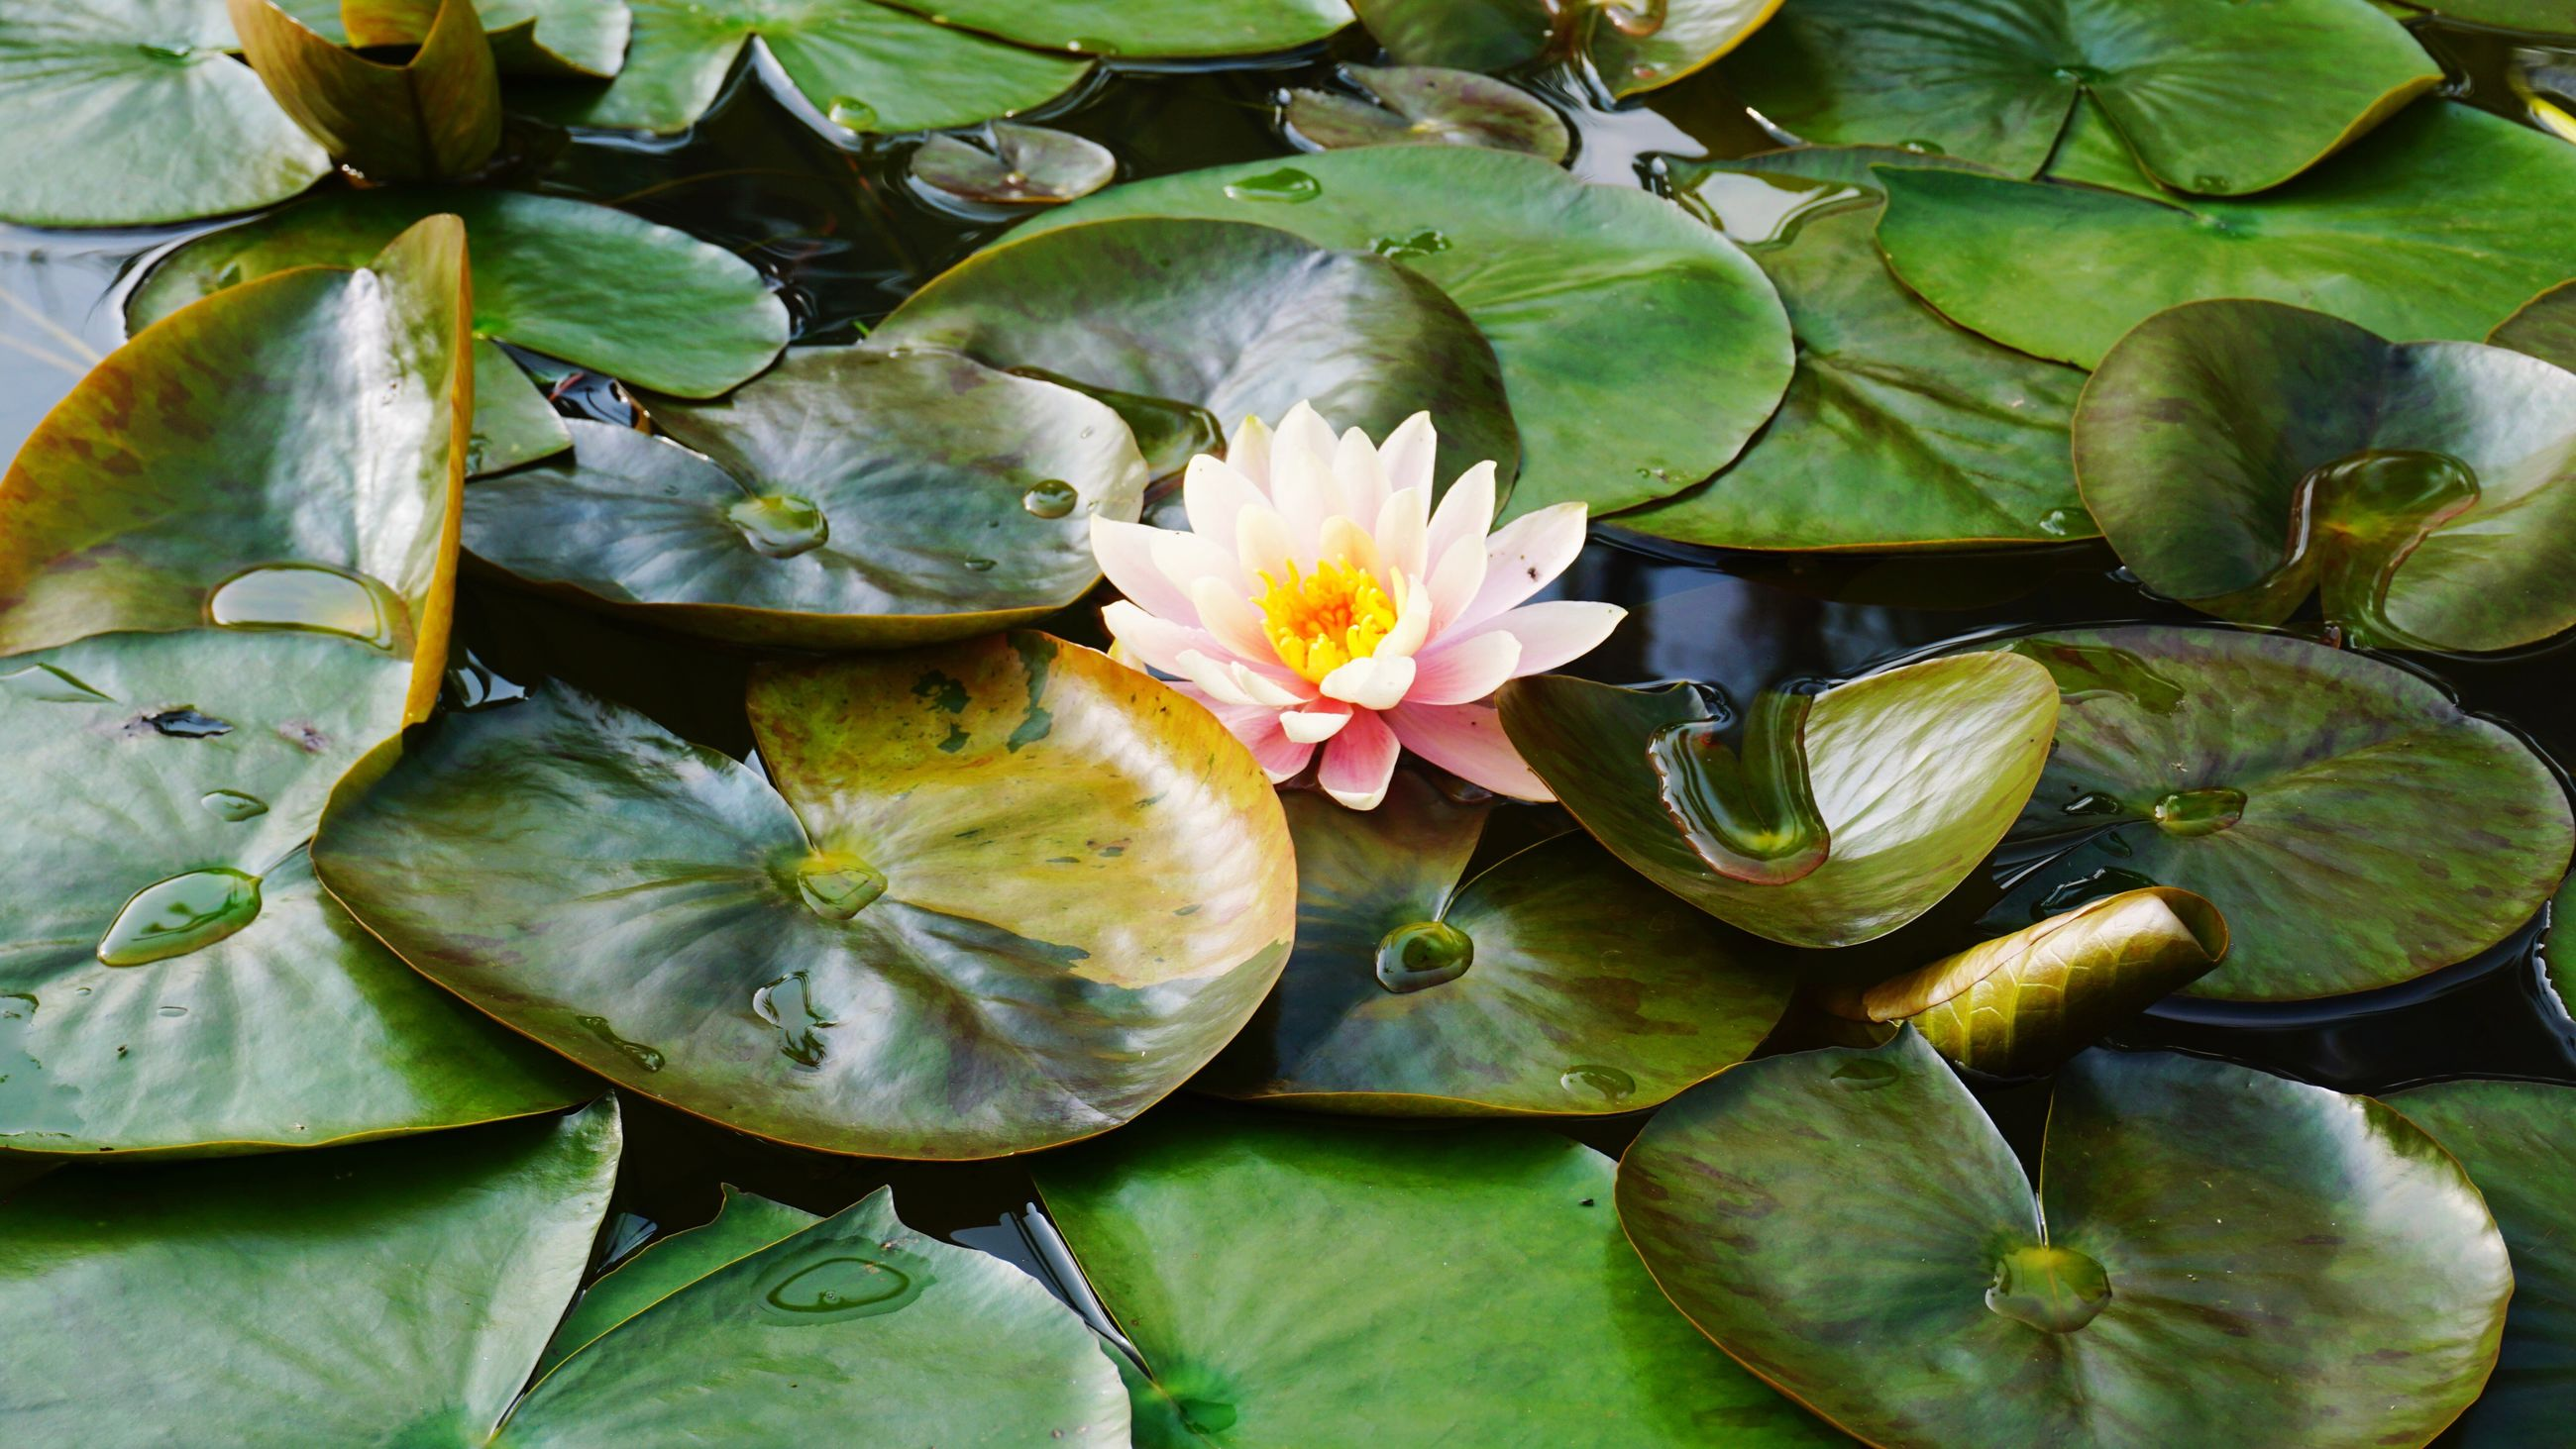 HIGH ANGLE VIEW OF PINK LOTUS WATER LILY IN POND